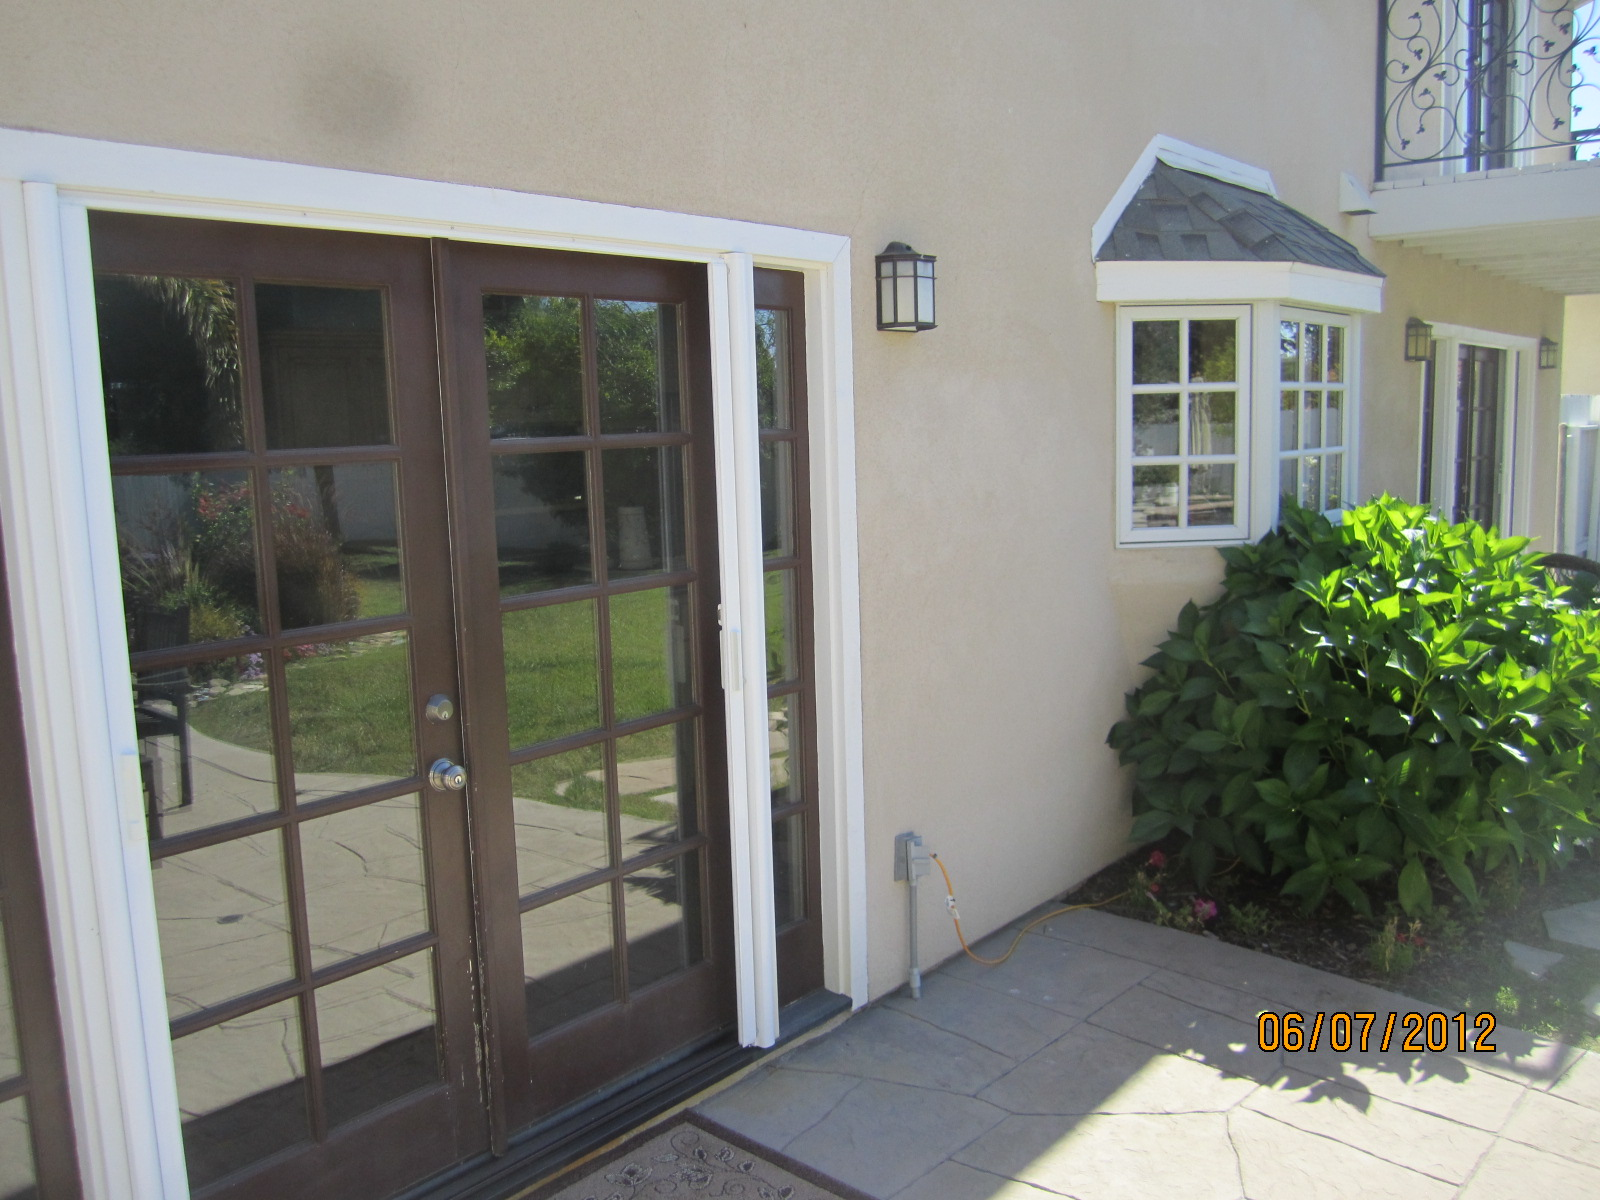 Retractable screen doors with doorknob handle and white baseboard molding